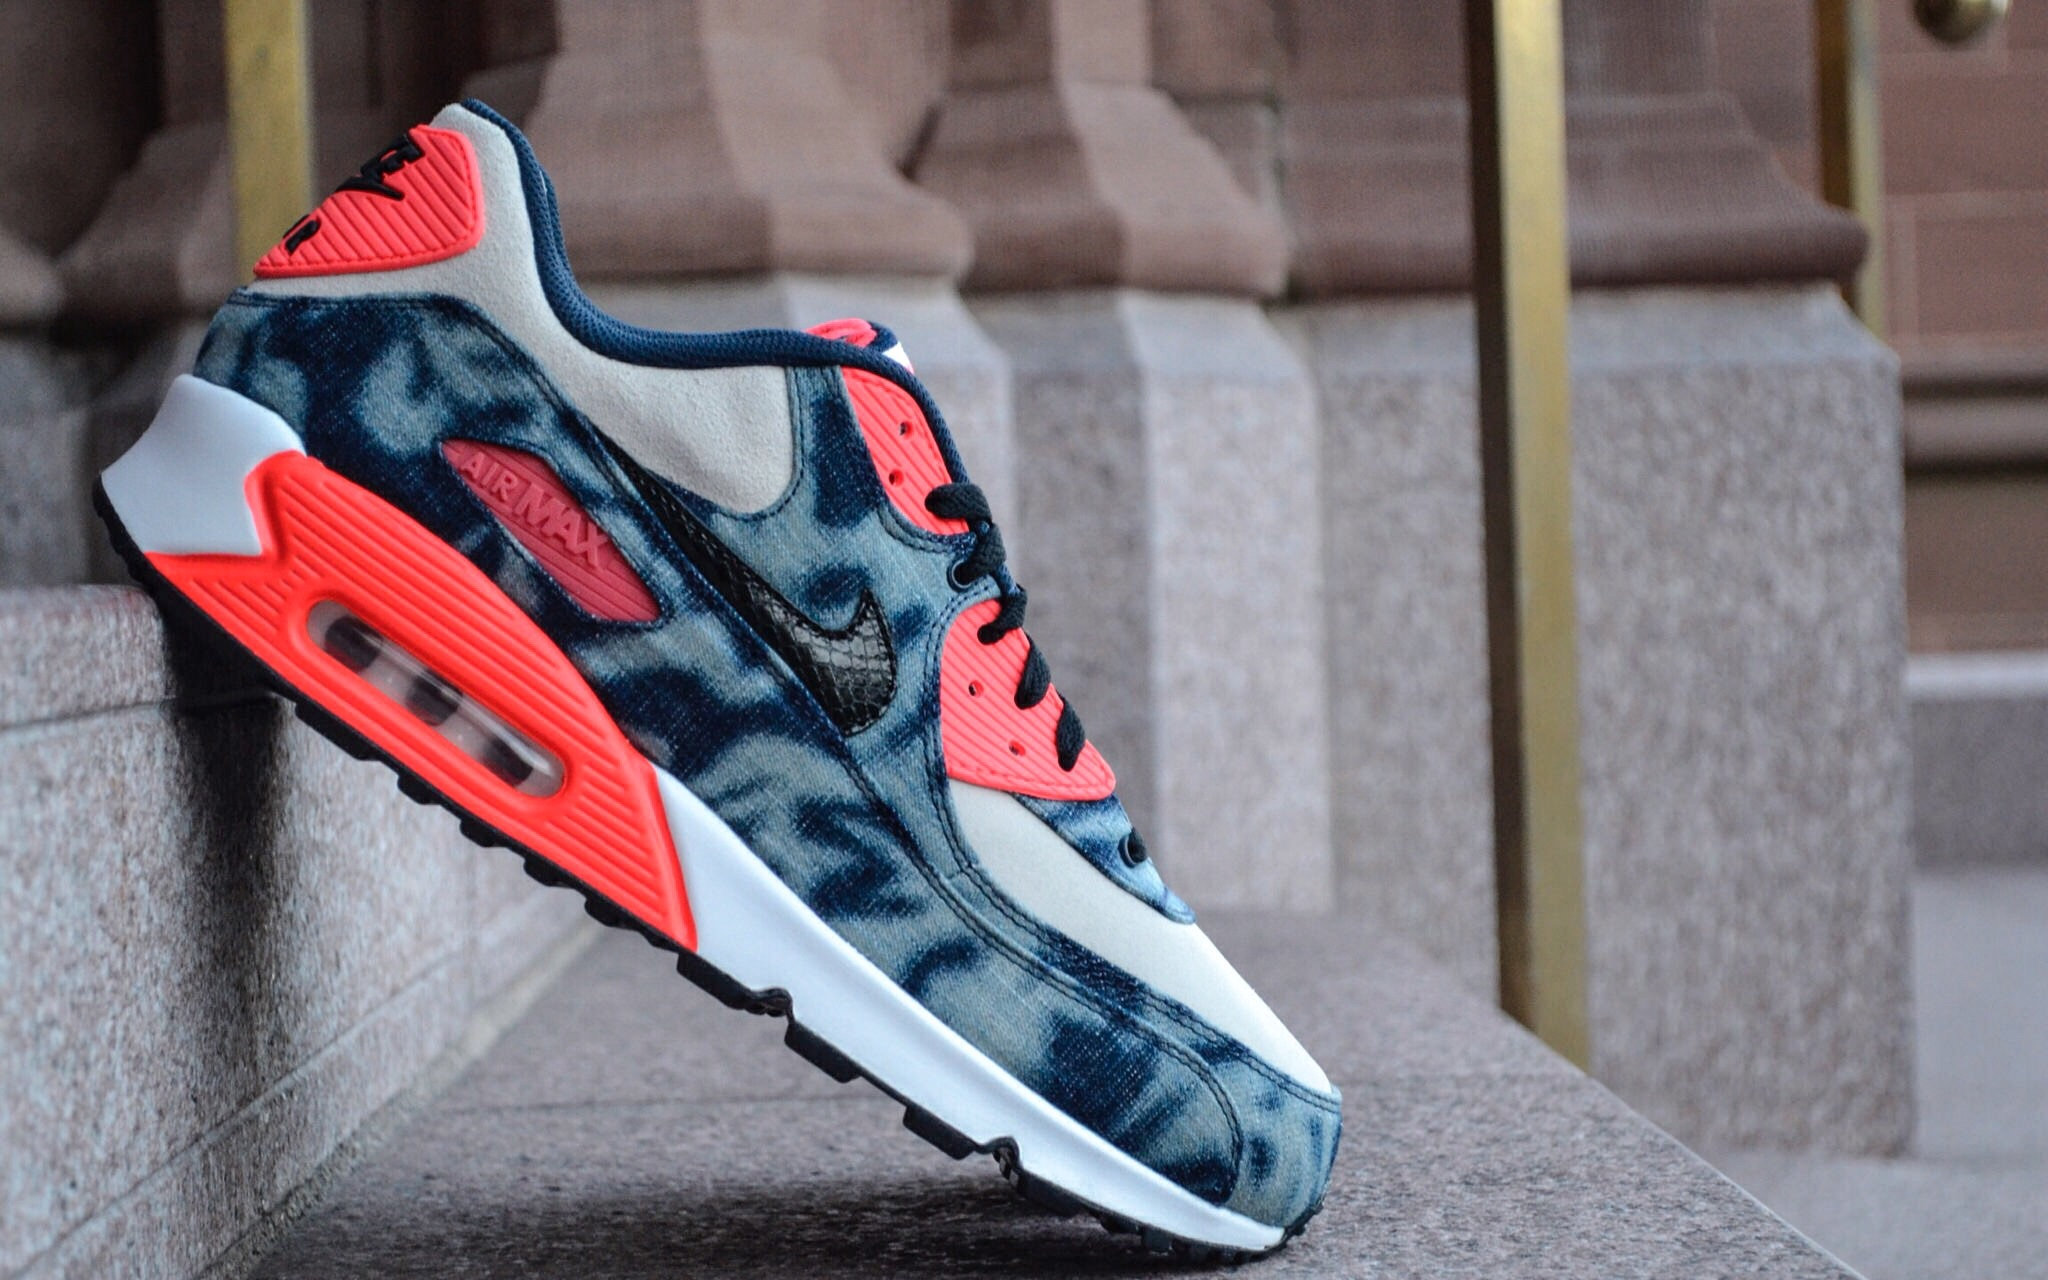 """The Nike Sportwear Air Max 90 QS """"Bleached Camo"""" utilizes a premium suede and denim upper along with hits of the classic Nike Infrared hue."""